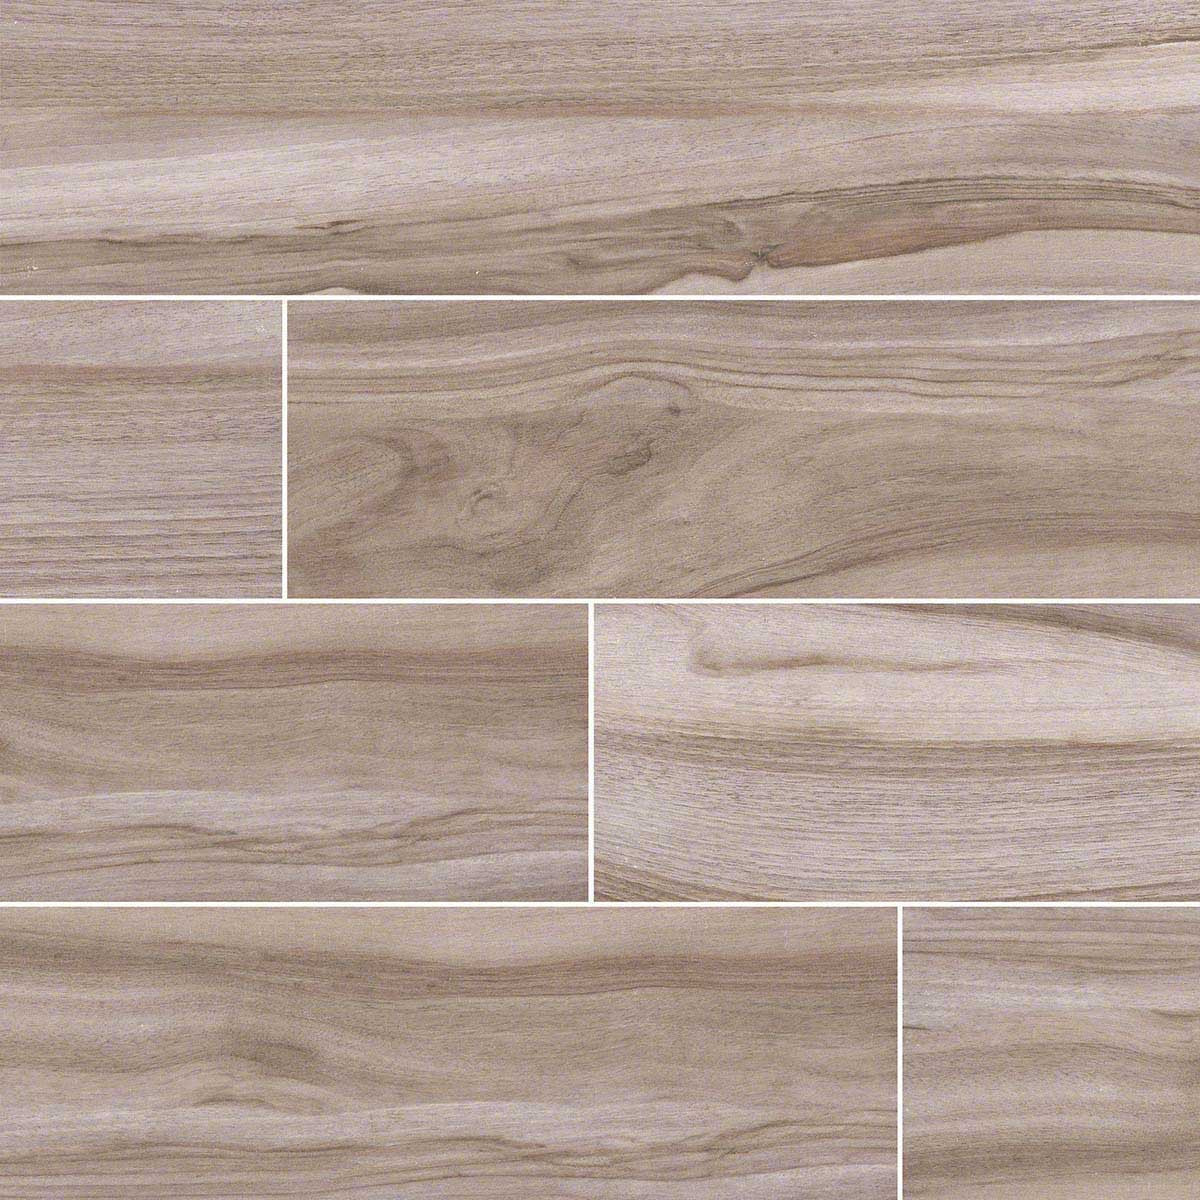 Ceramic & Porcelain Tiles | Kitchen Tiles | Bathroom Tiles - Sinere ...